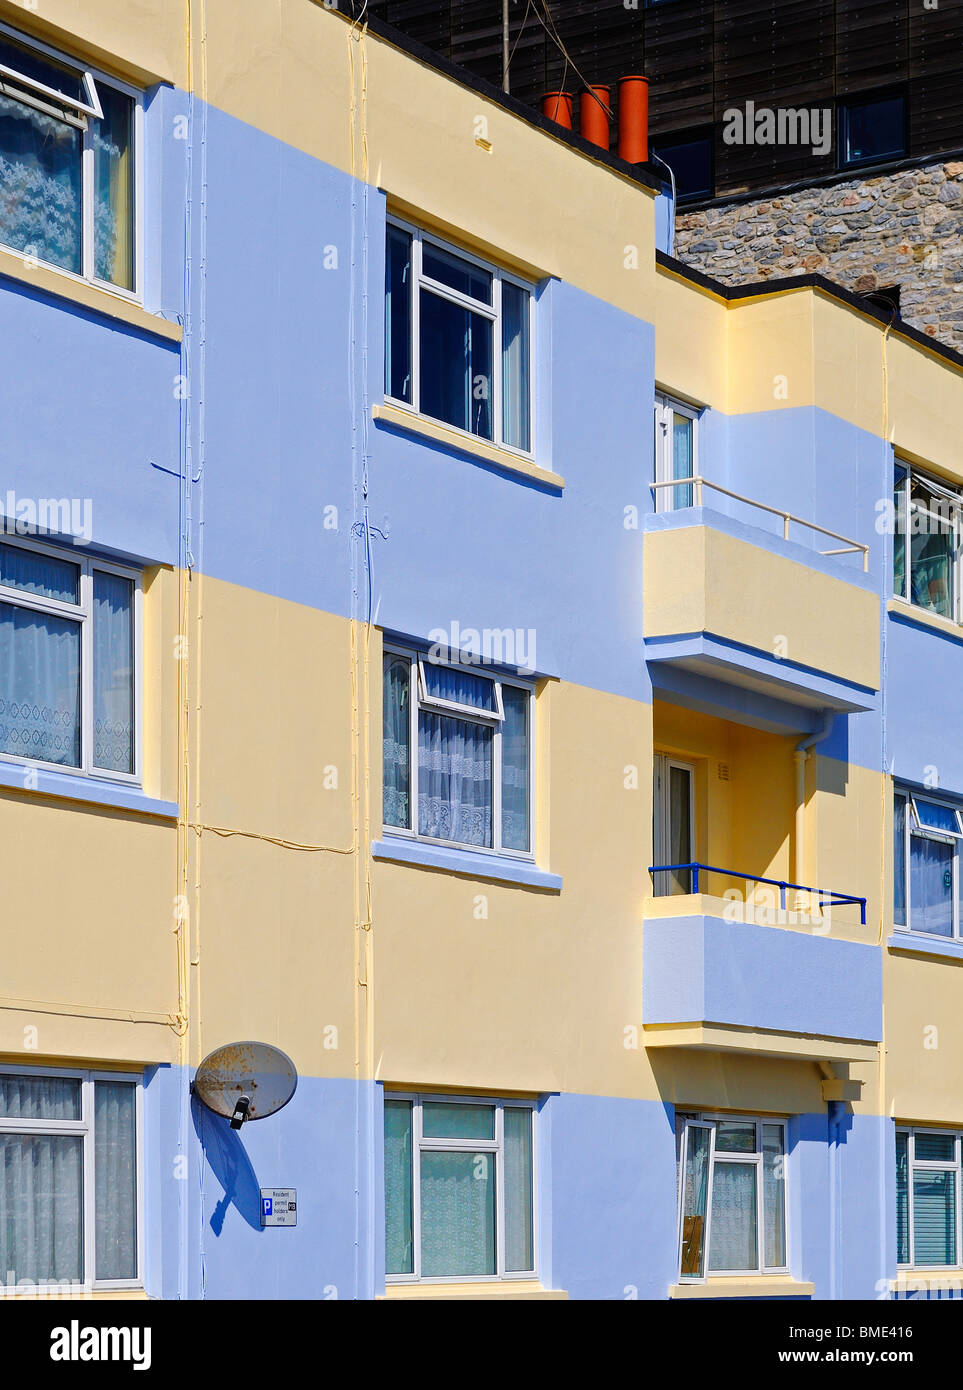 apartments overlooking the barbican in plymouth,devon,uk - Stock Image